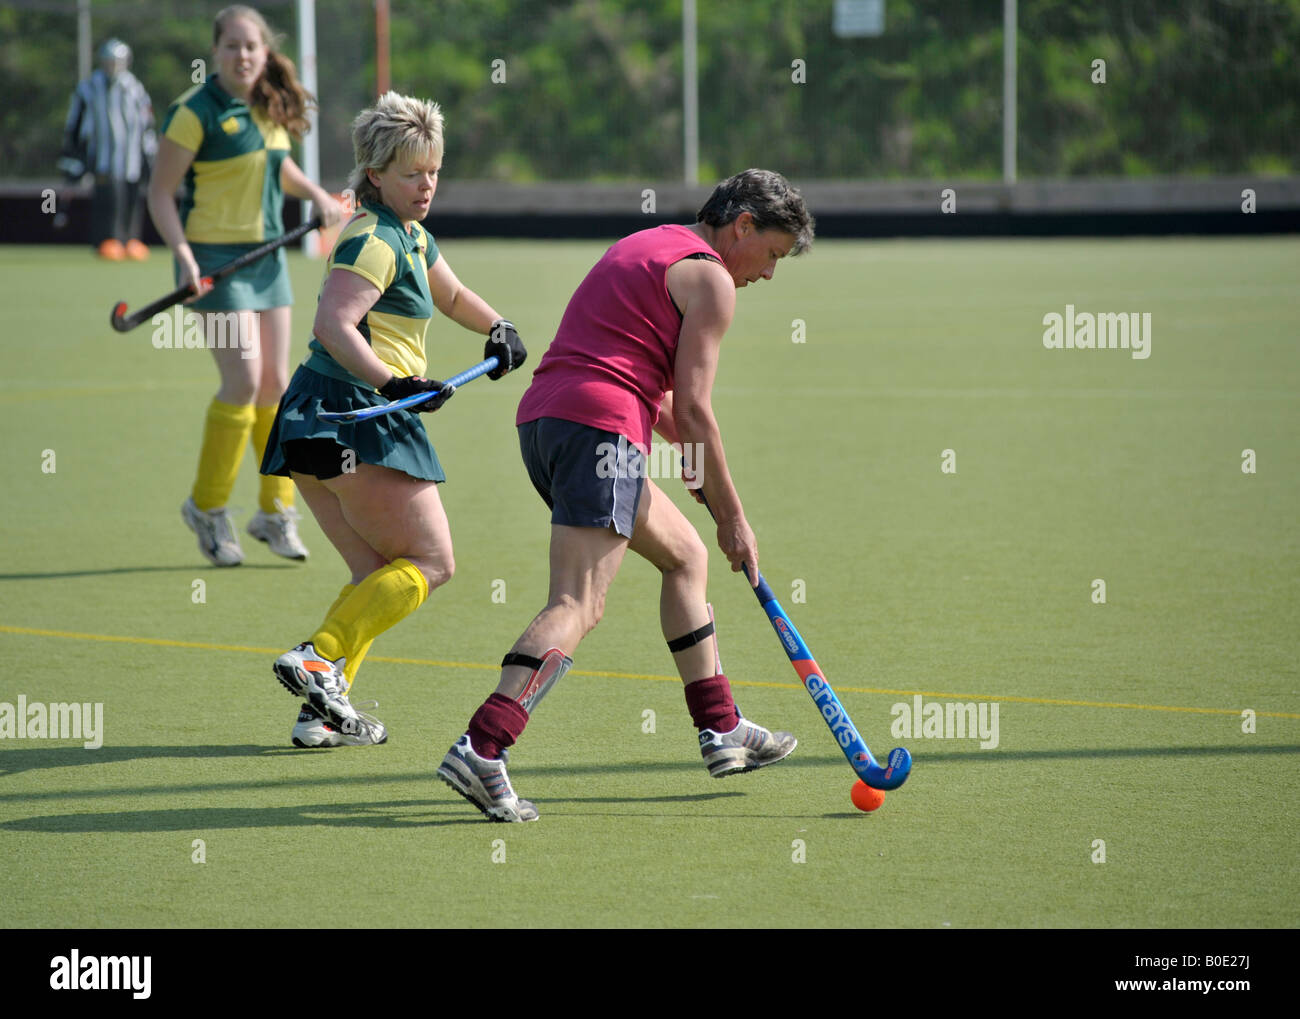 older women playing field hockey on astroturf outdoors stock photo